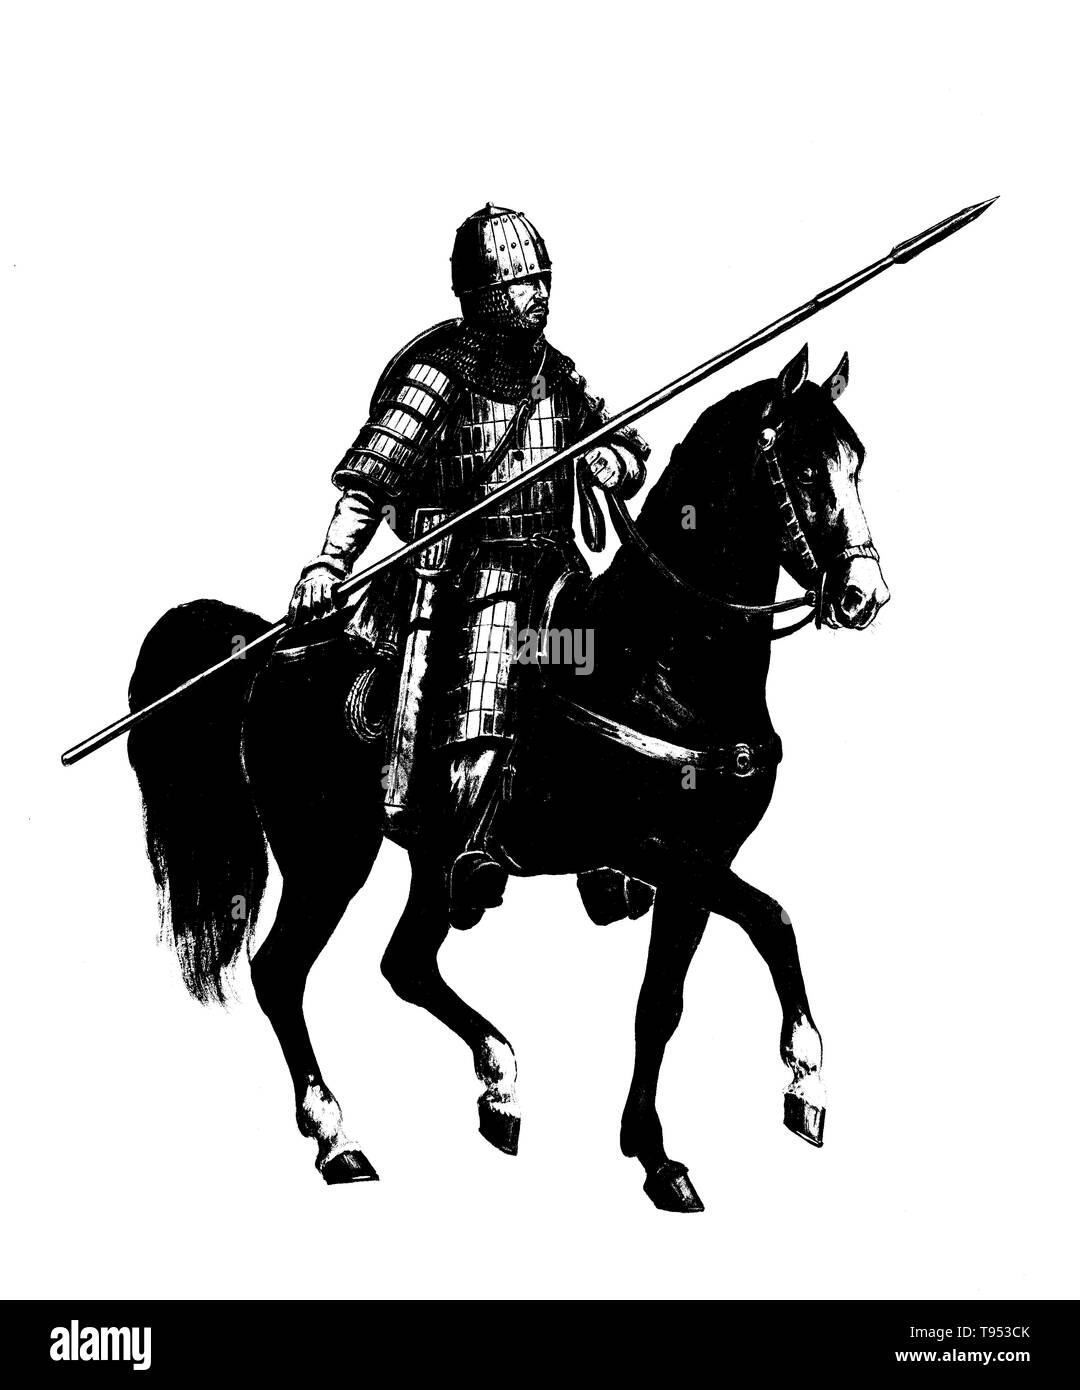 Mounted knight. Heavy armored magyar (hungarian) rider. Medieval cavalry illustration. Historical illustration. - Stock Image